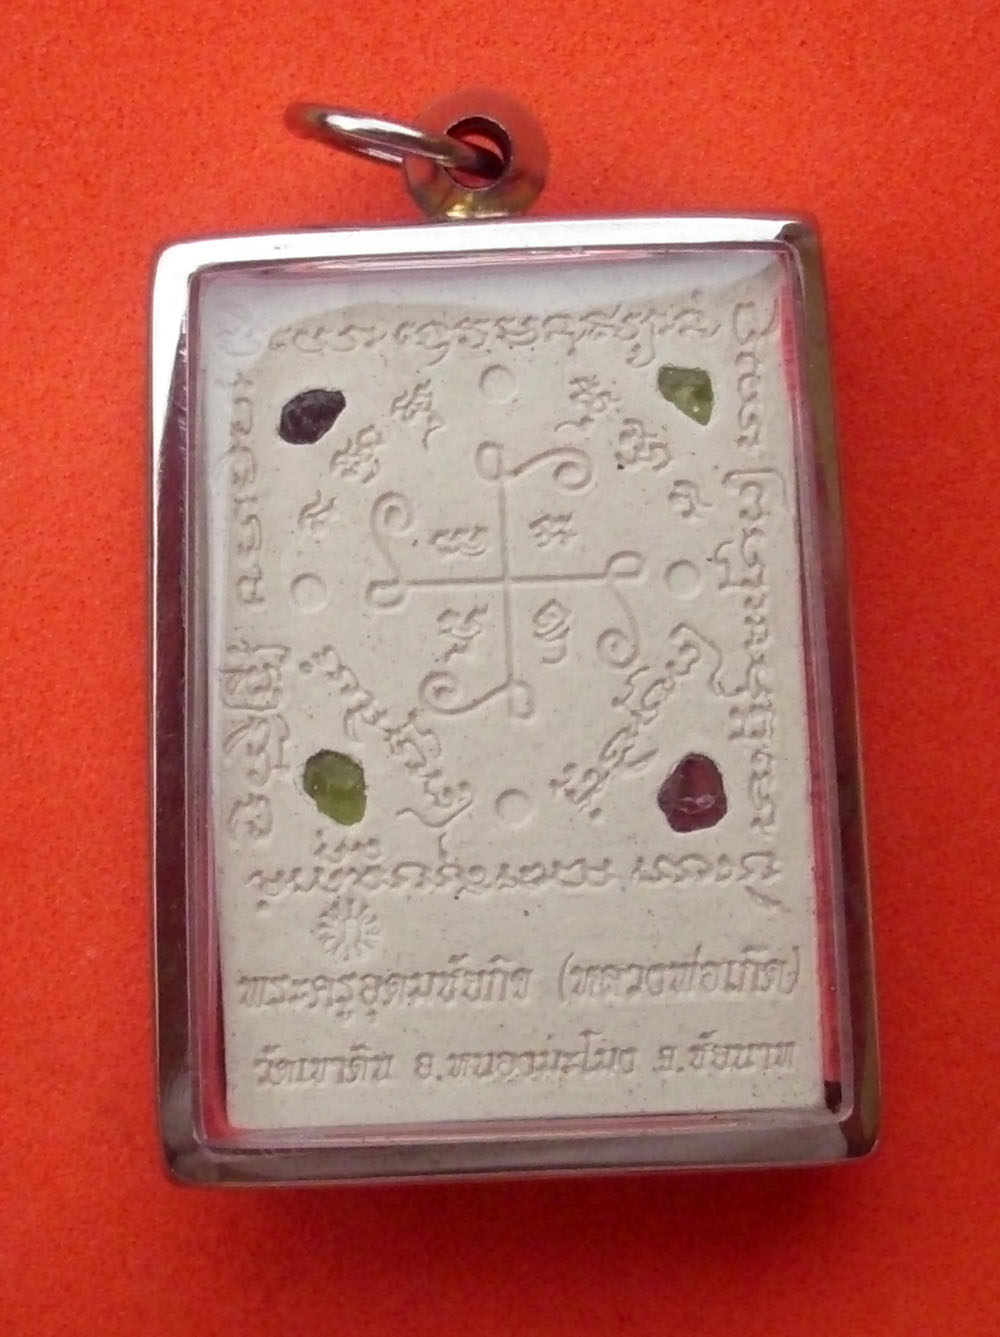 prescious stones are embedded in the rear face of the amulet